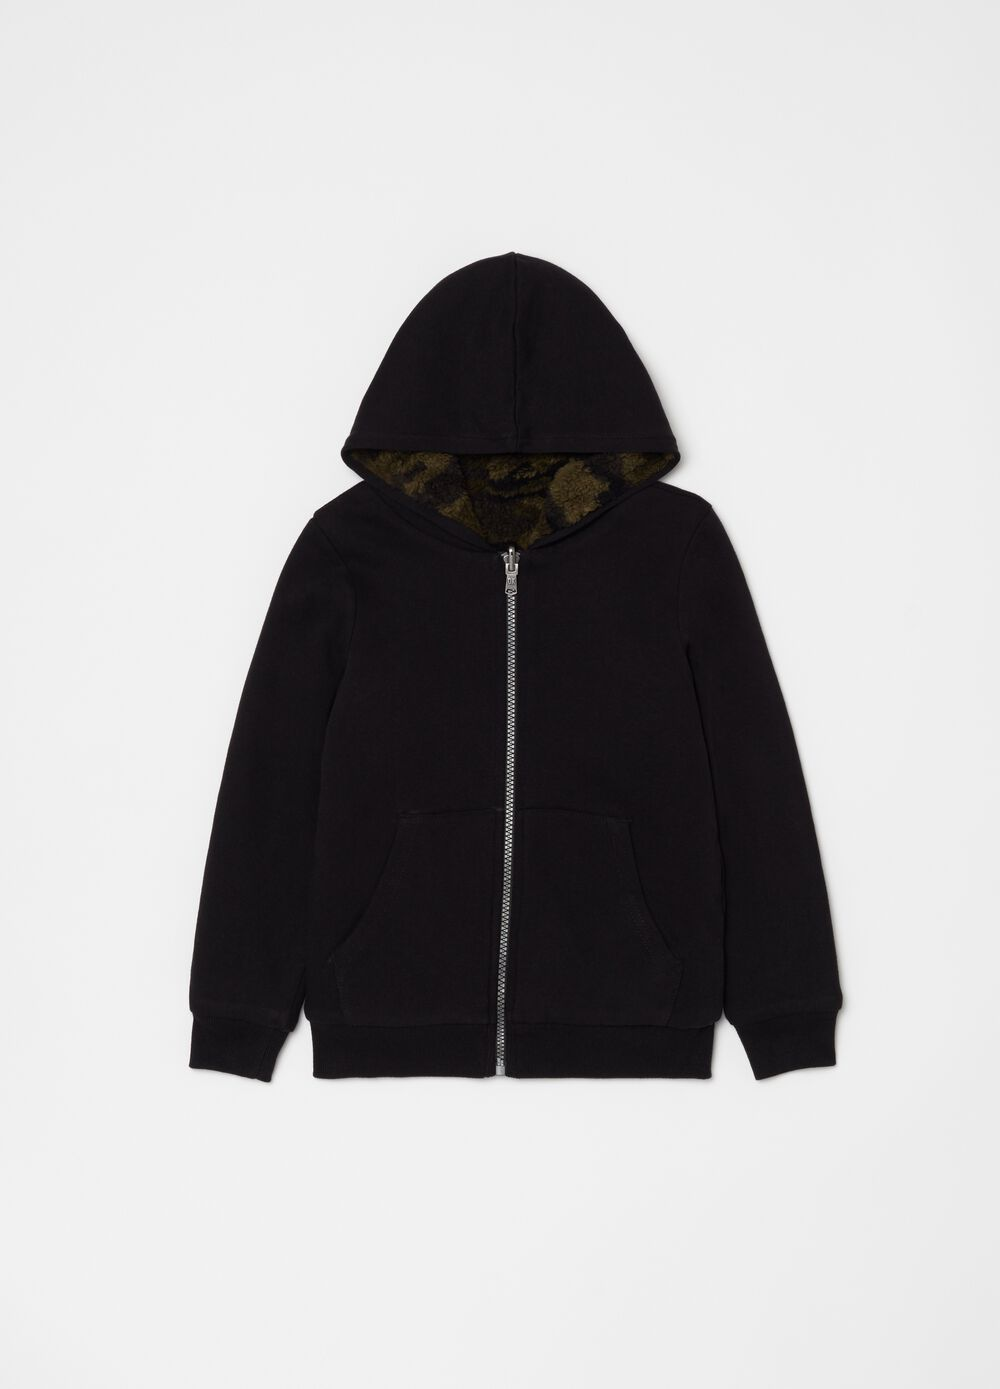 100% cotton hoodie with zip